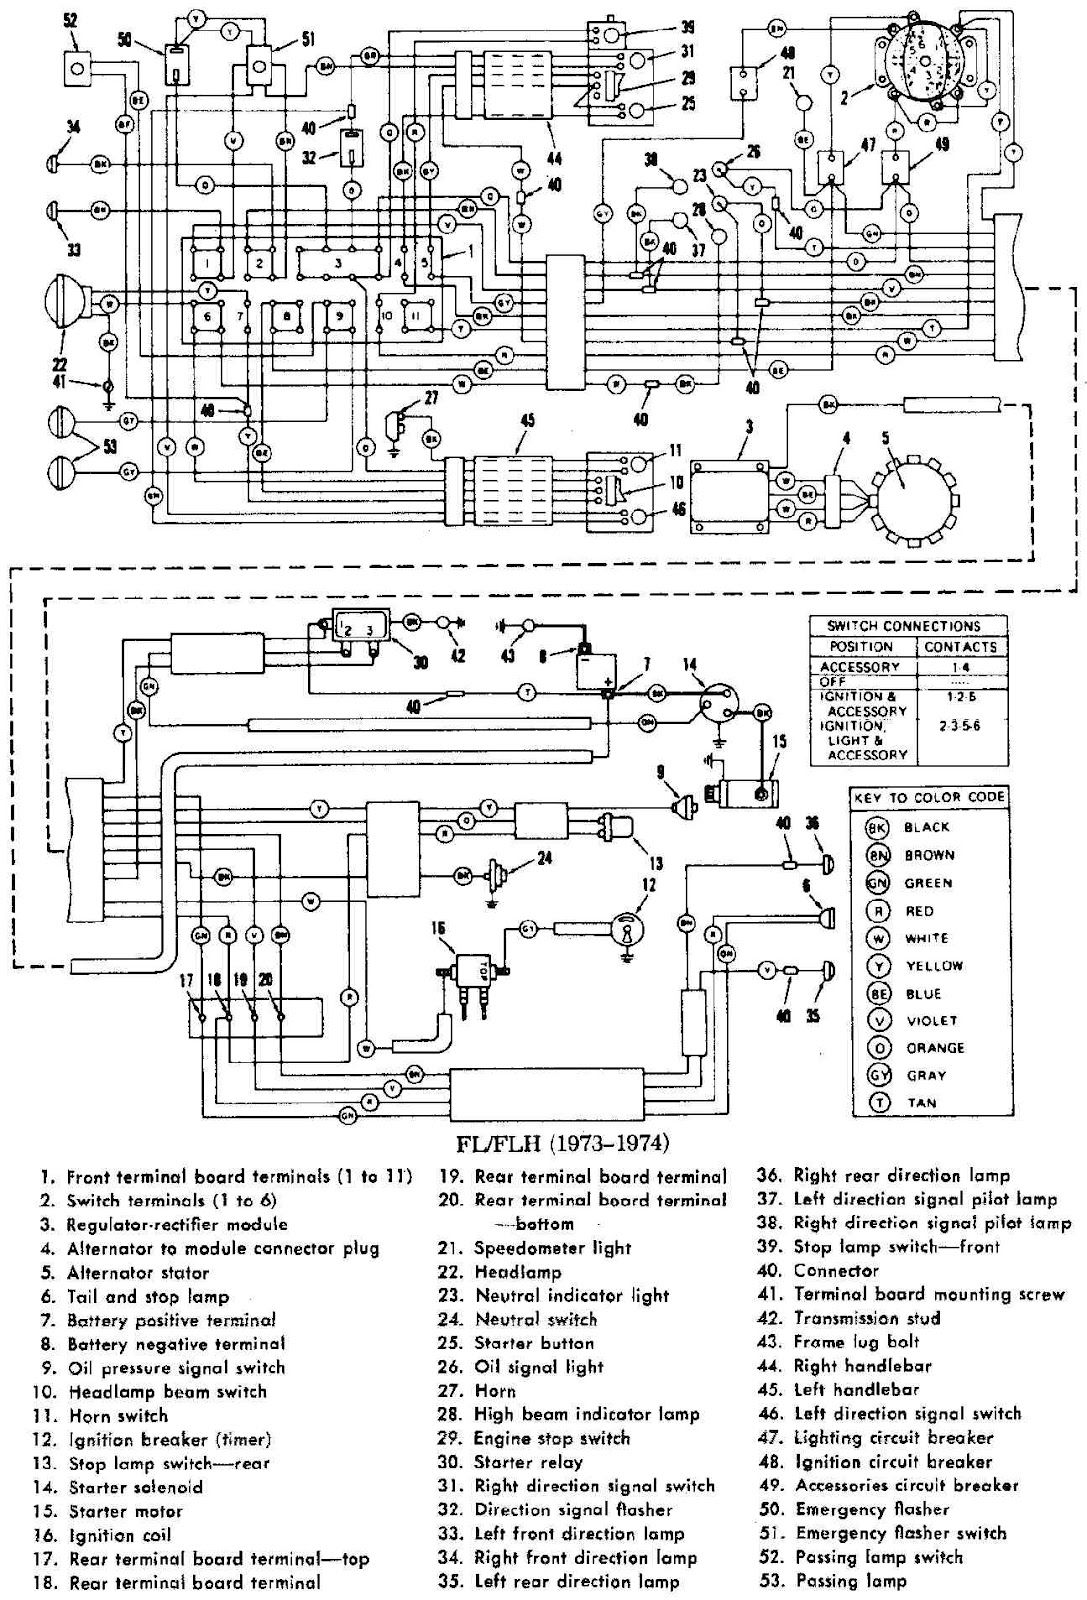 harley rocker wiring diagram 12 volt rocker wiring diagram free picture harley davidson softail slim wiring diagram | wiring library